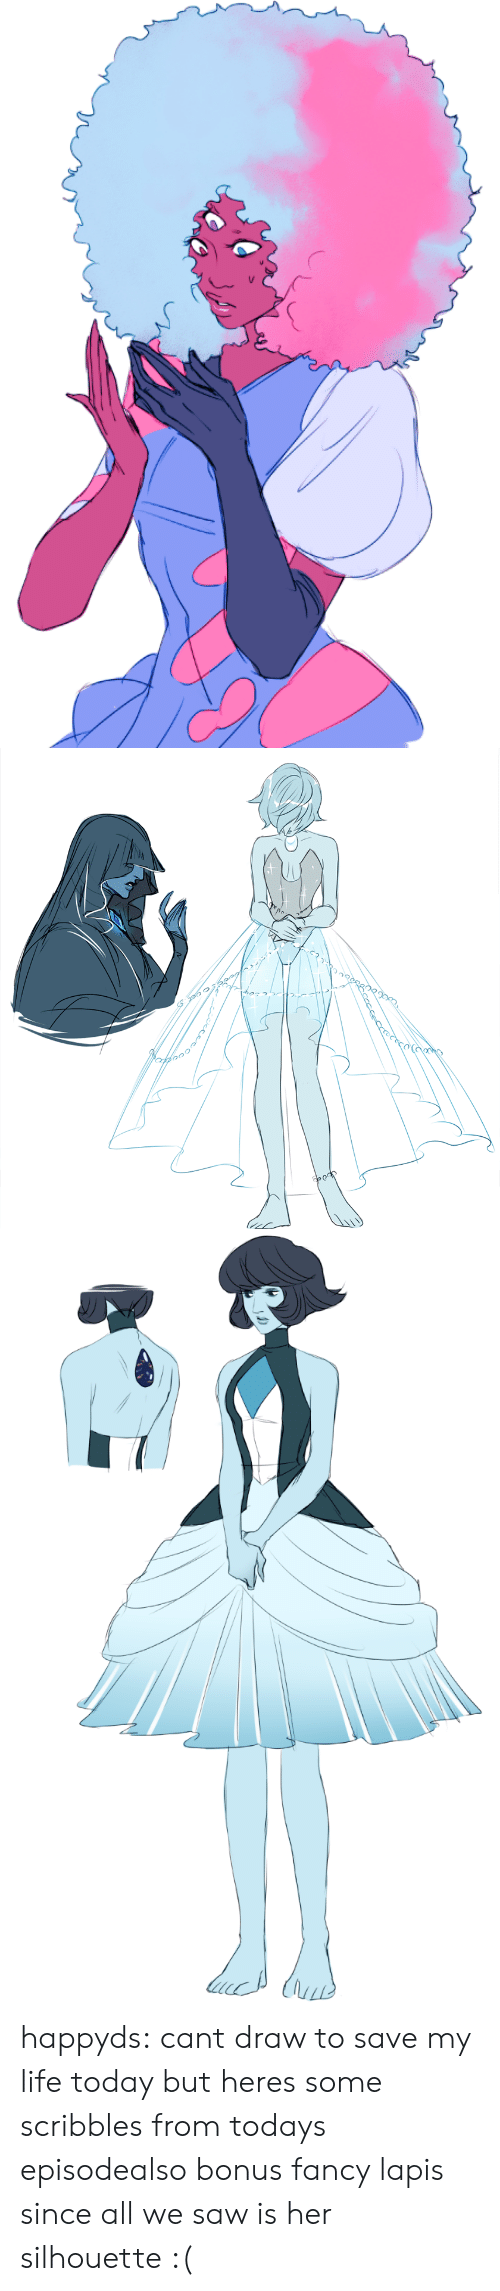 Cant Draw: happyds:  cant draw to save my life today but heres some scribbles from todays episodealso bonus fancy lapis since all we saw is her silhouette :(